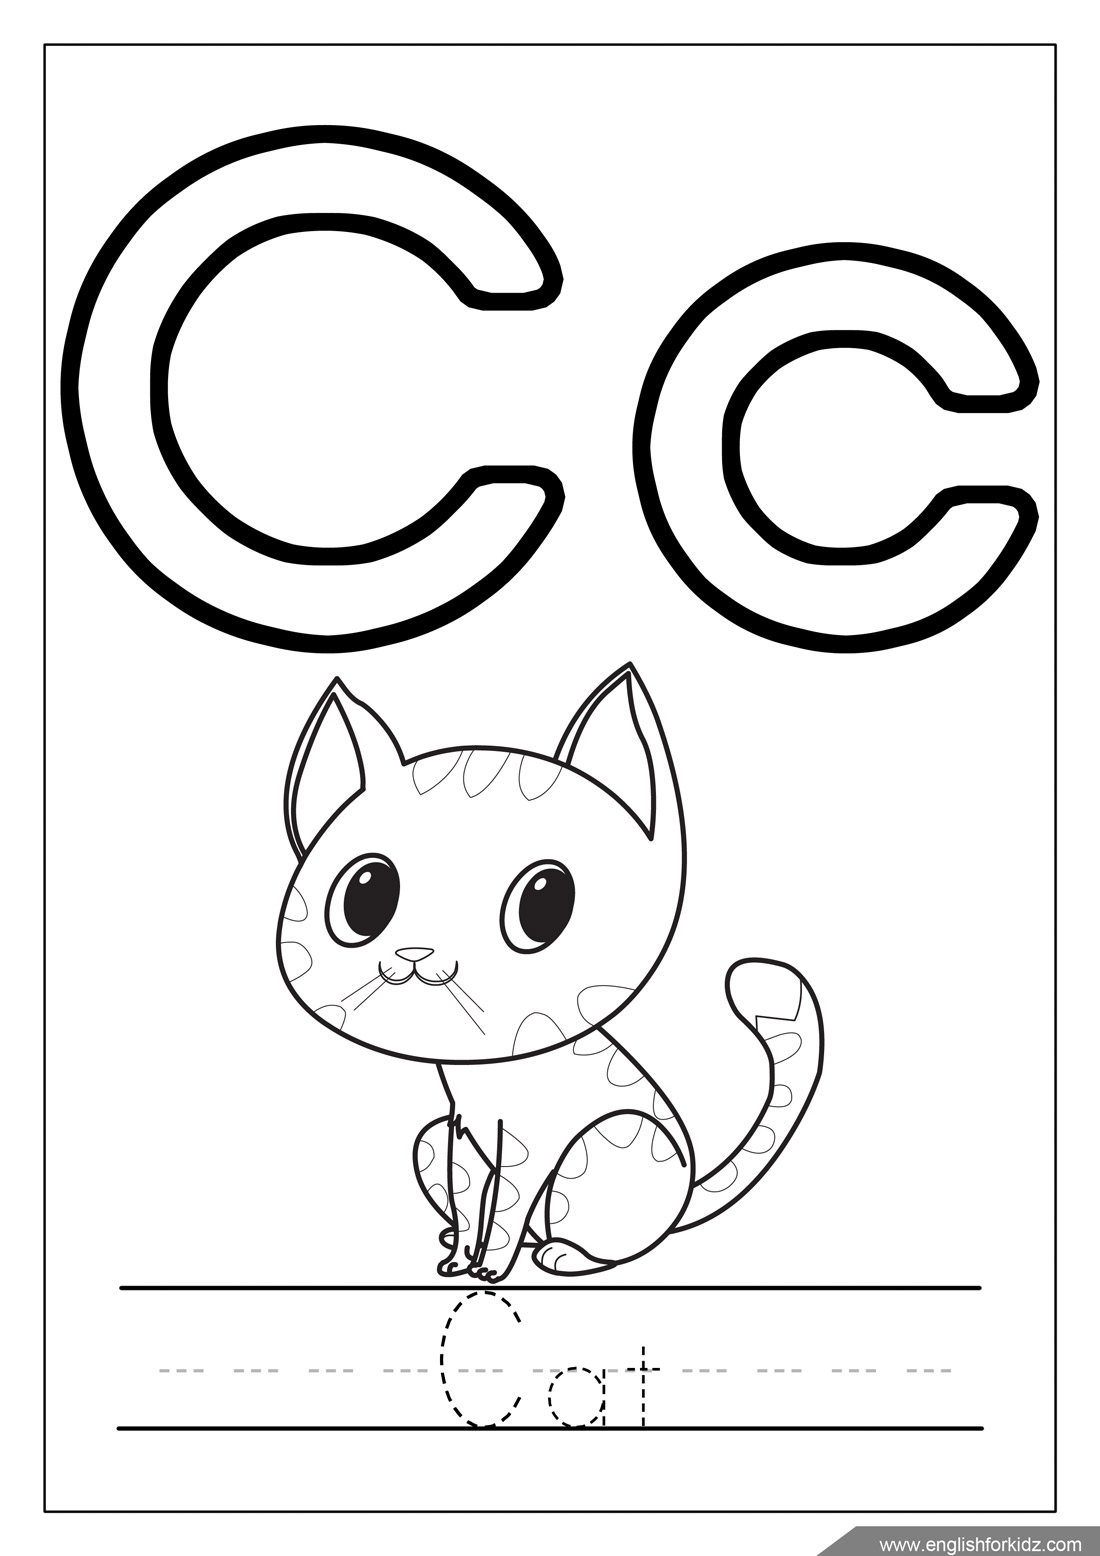 Printable alphabet coloring pages letters a j for Coloring pages for the letter c